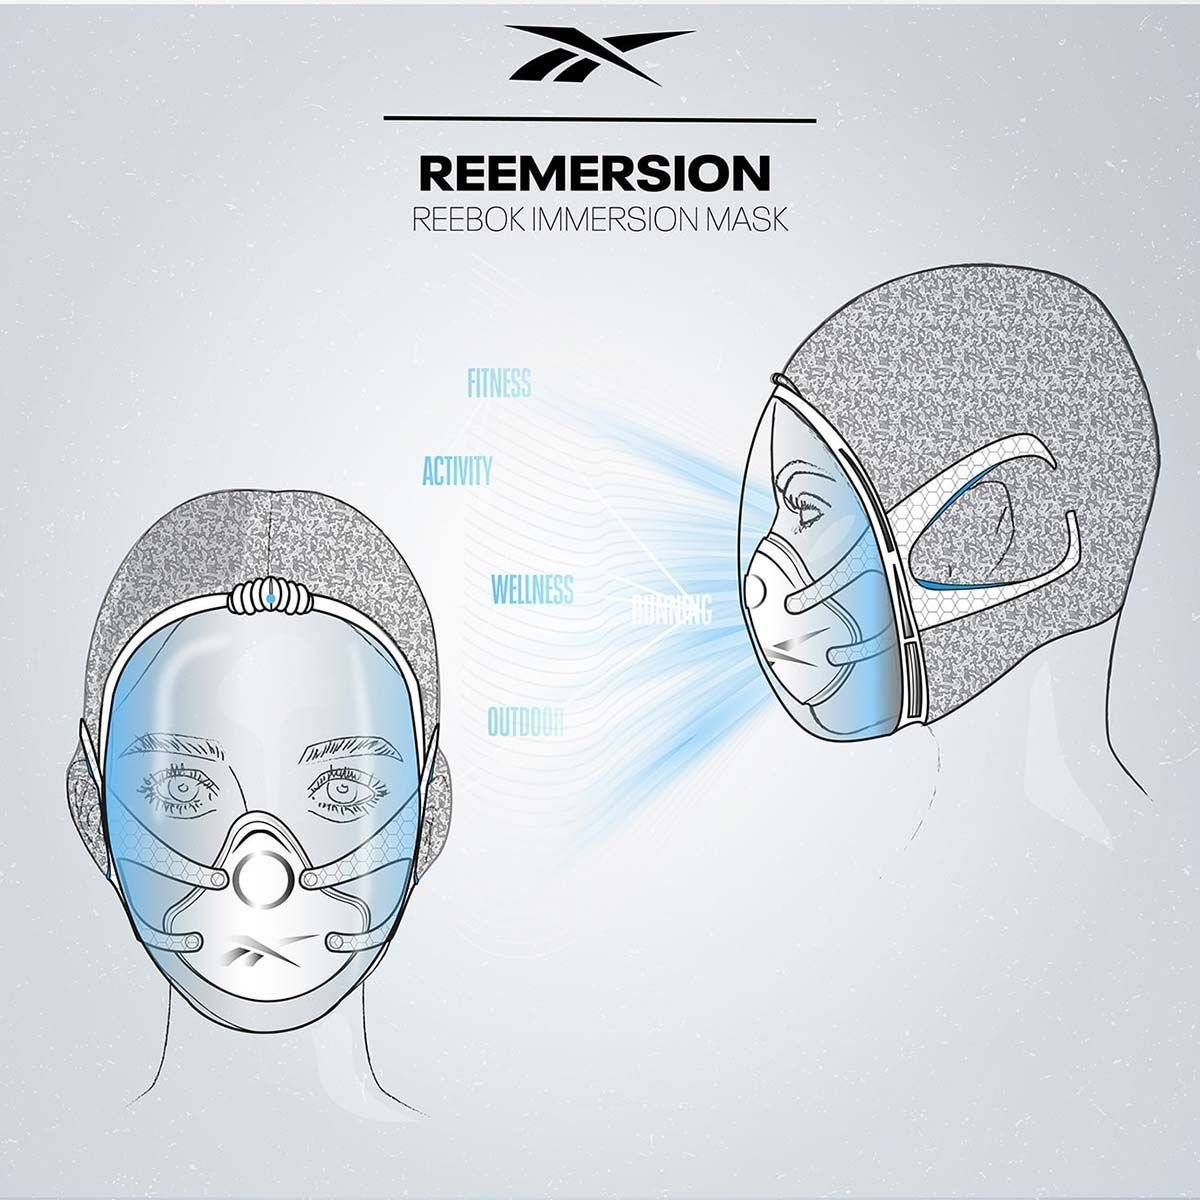 Mascarilla reemersion de Reebok